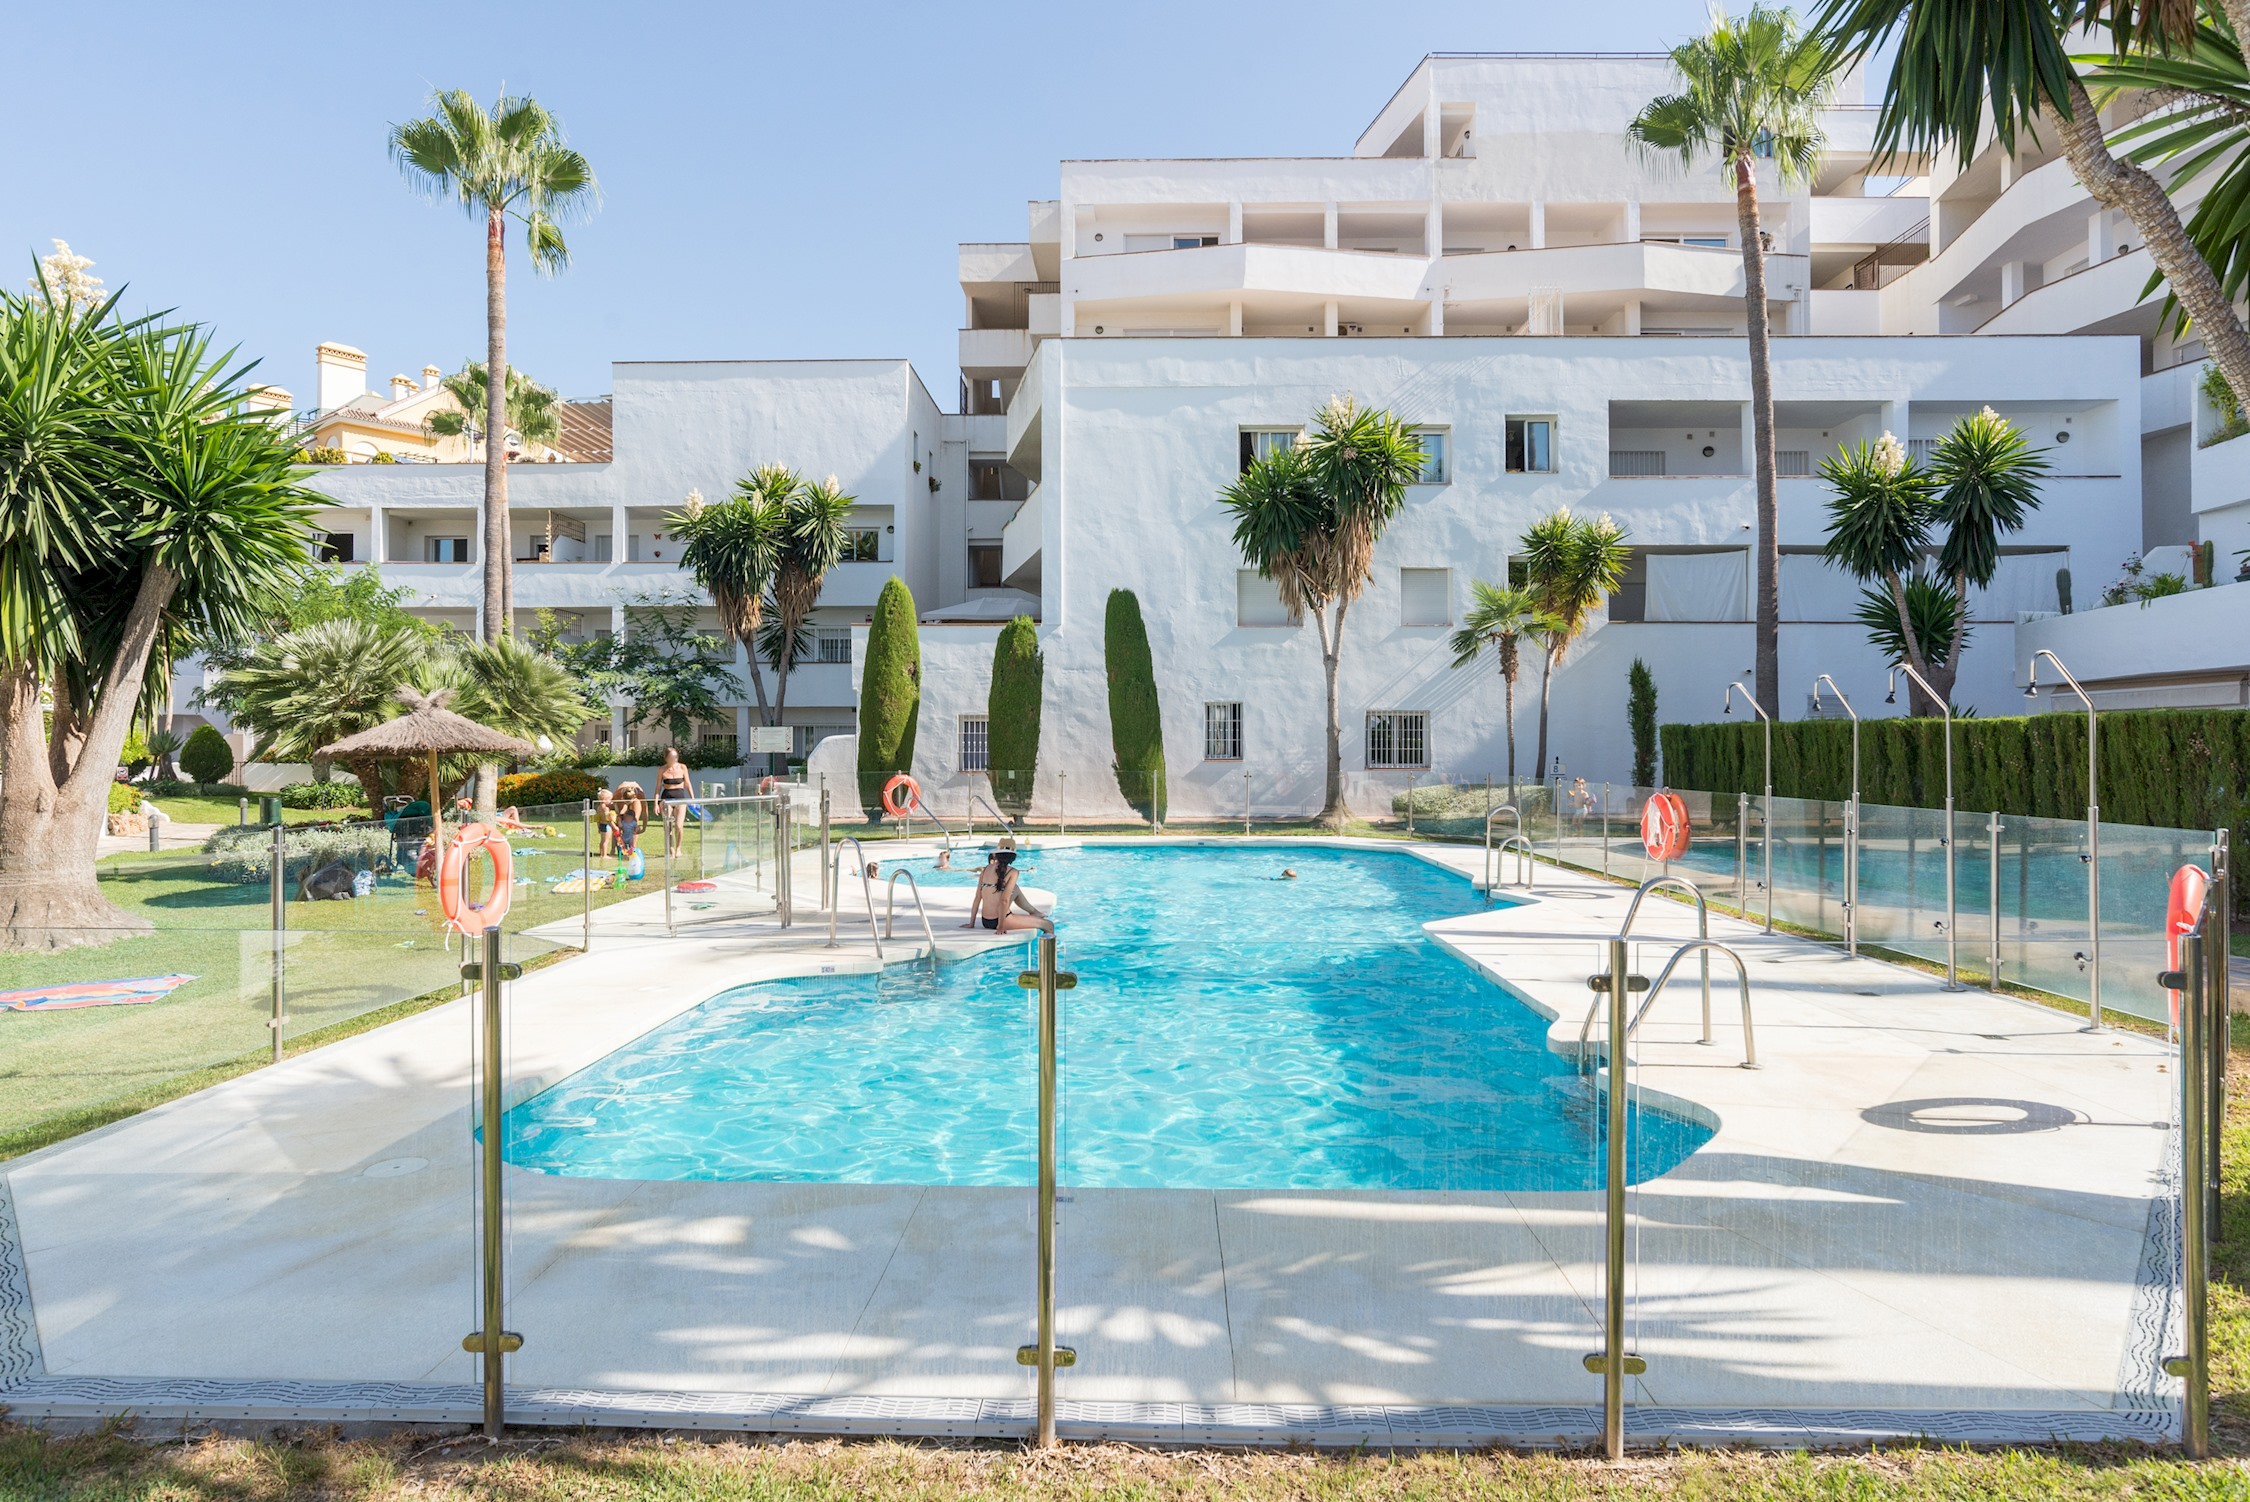 Apartment MalagaSuite Marbella Solarium   Pool photo 21306955